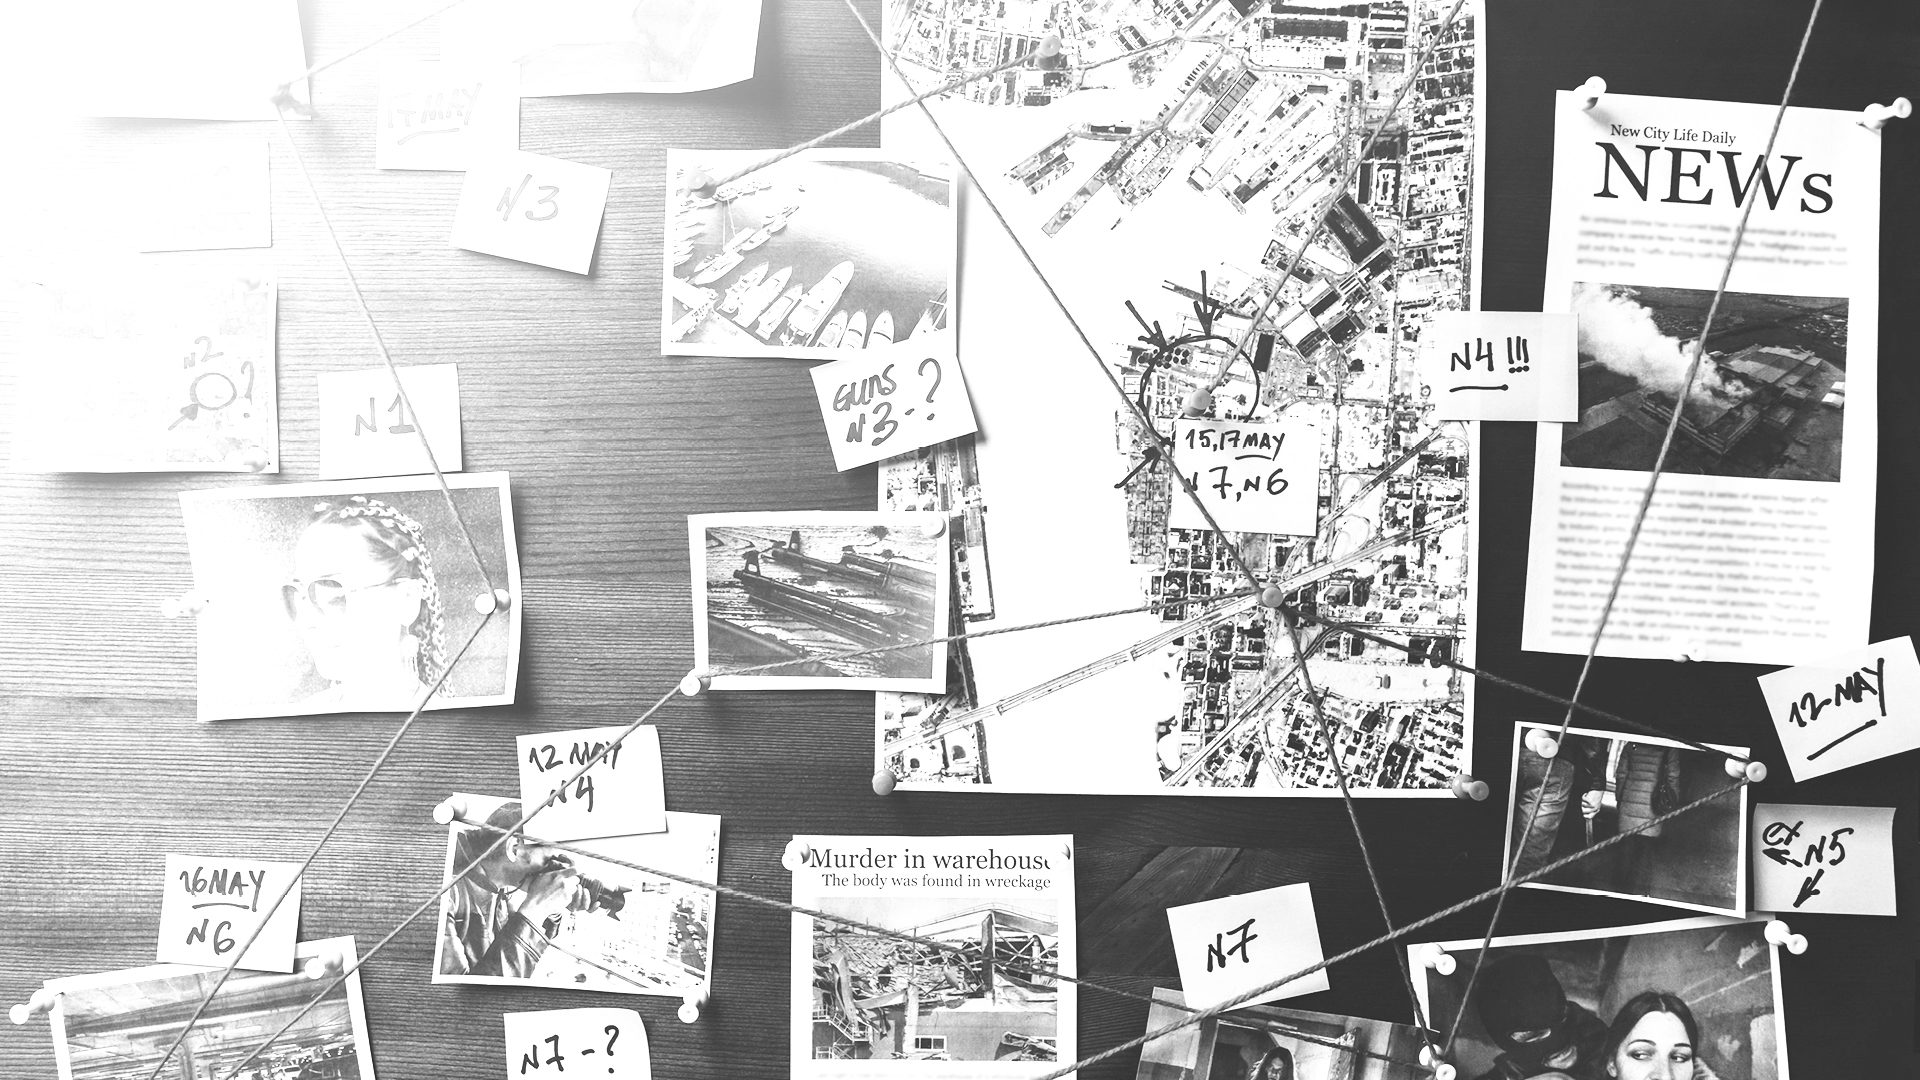 Image of a cork board with various images, sticky notes and articles on it and connected by strings.